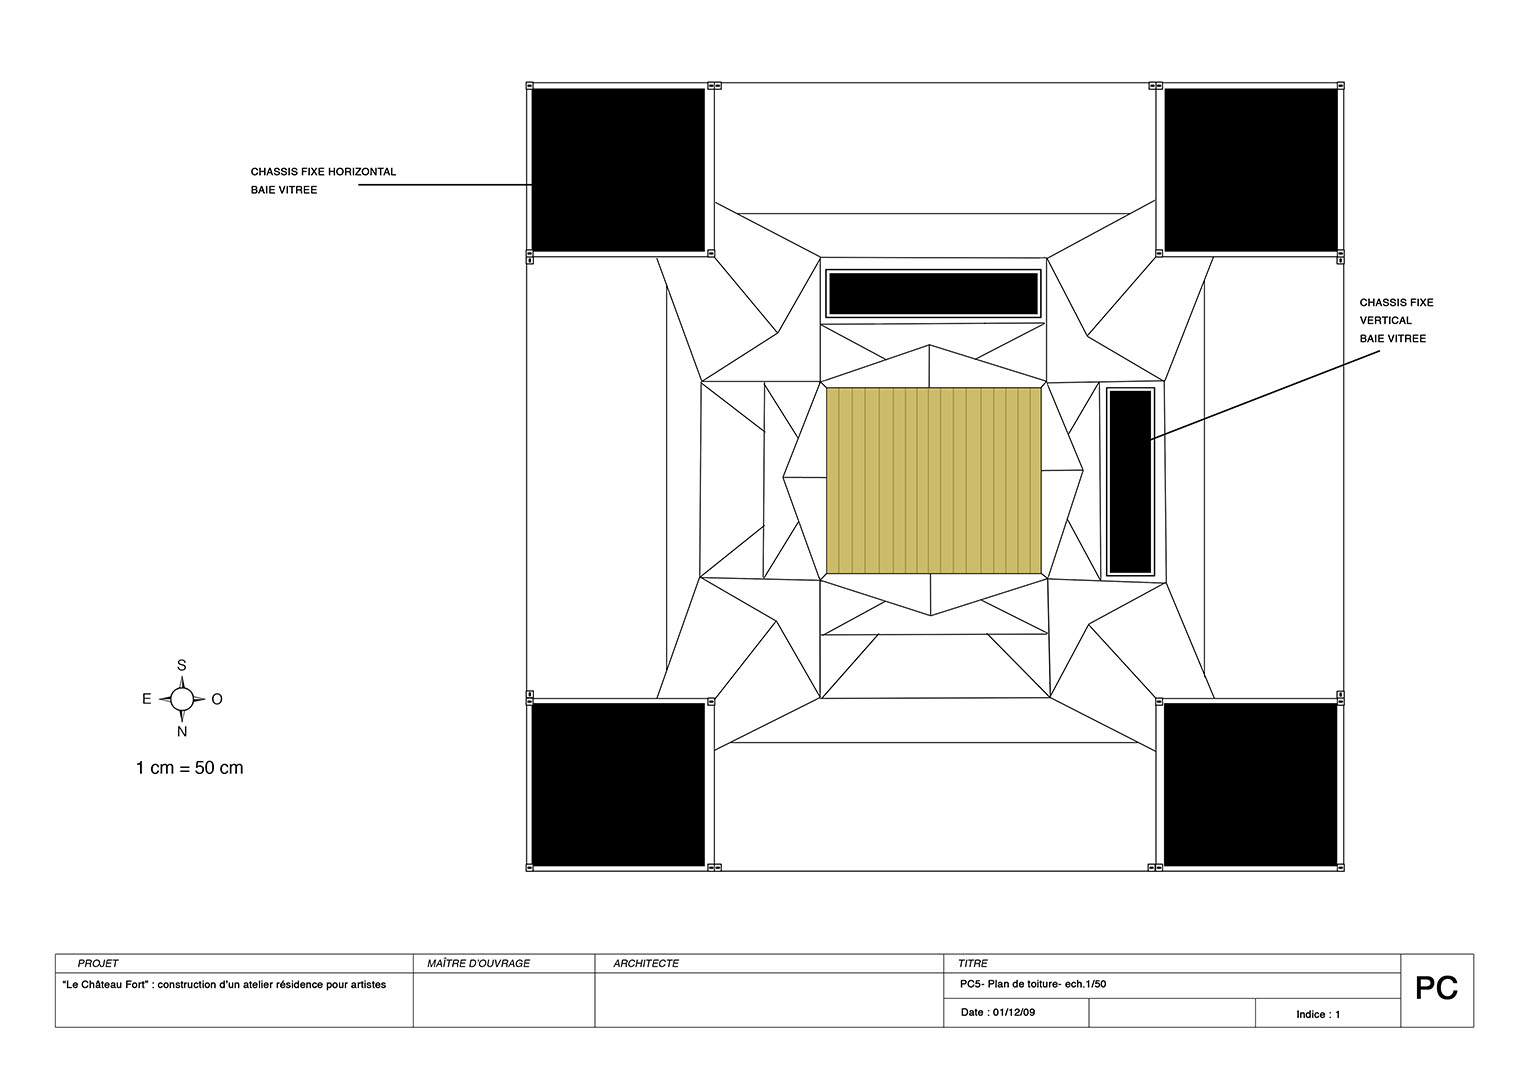 Chassis Atelier D Artiste dmgp observatory - space for the arts